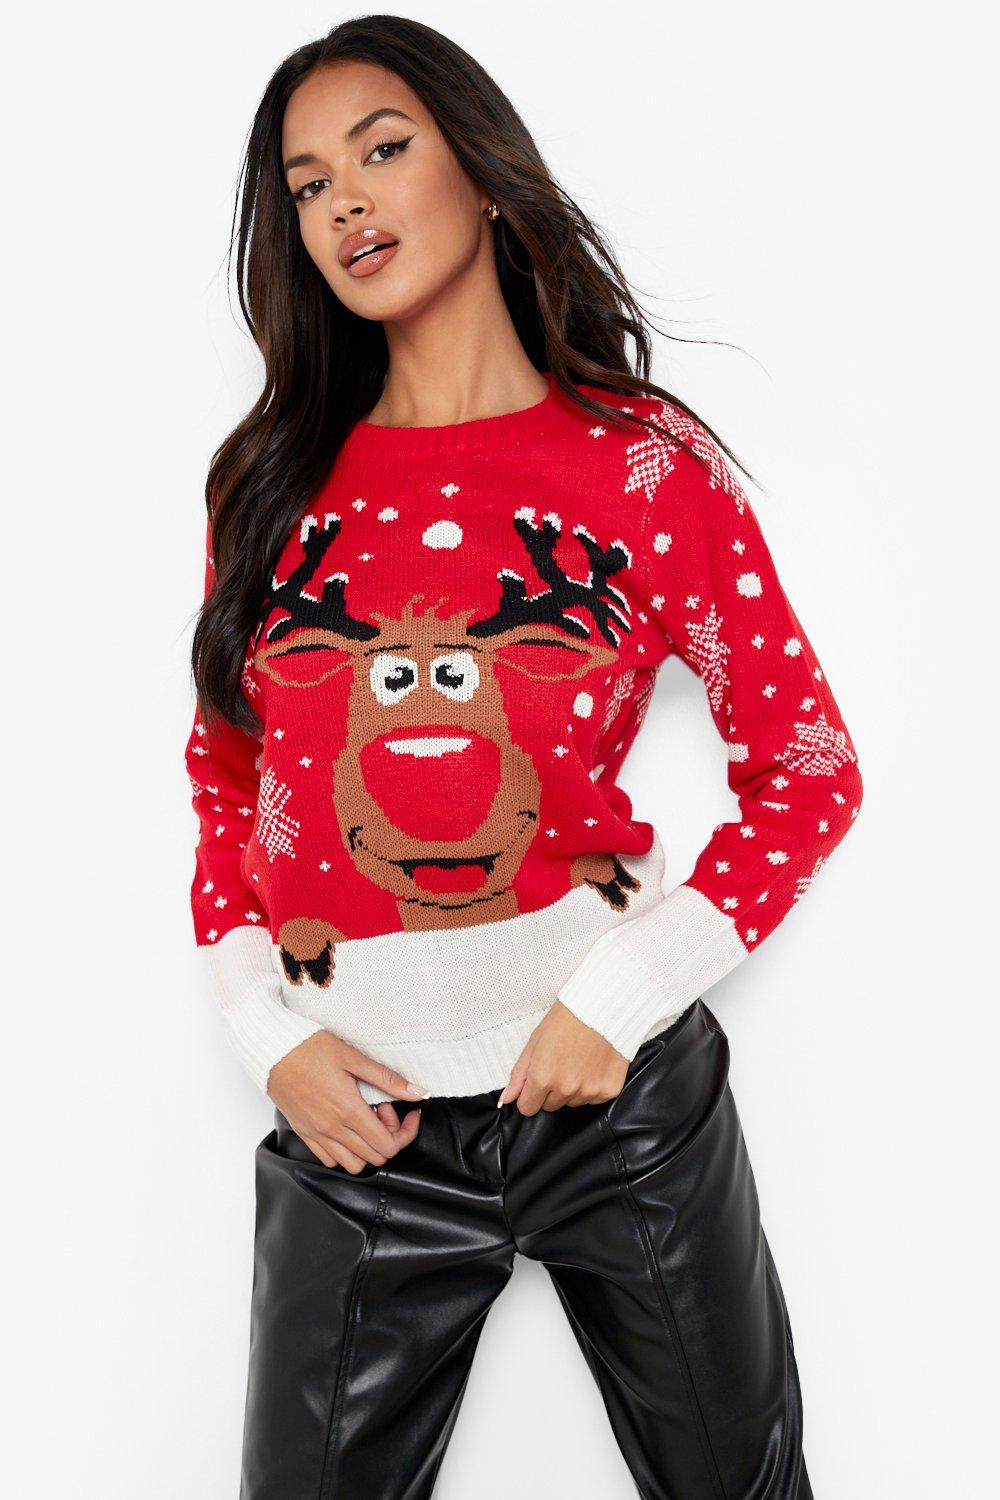 The best women's Christmas jumpers from Primark for , including the most hilarious Llama jumper.